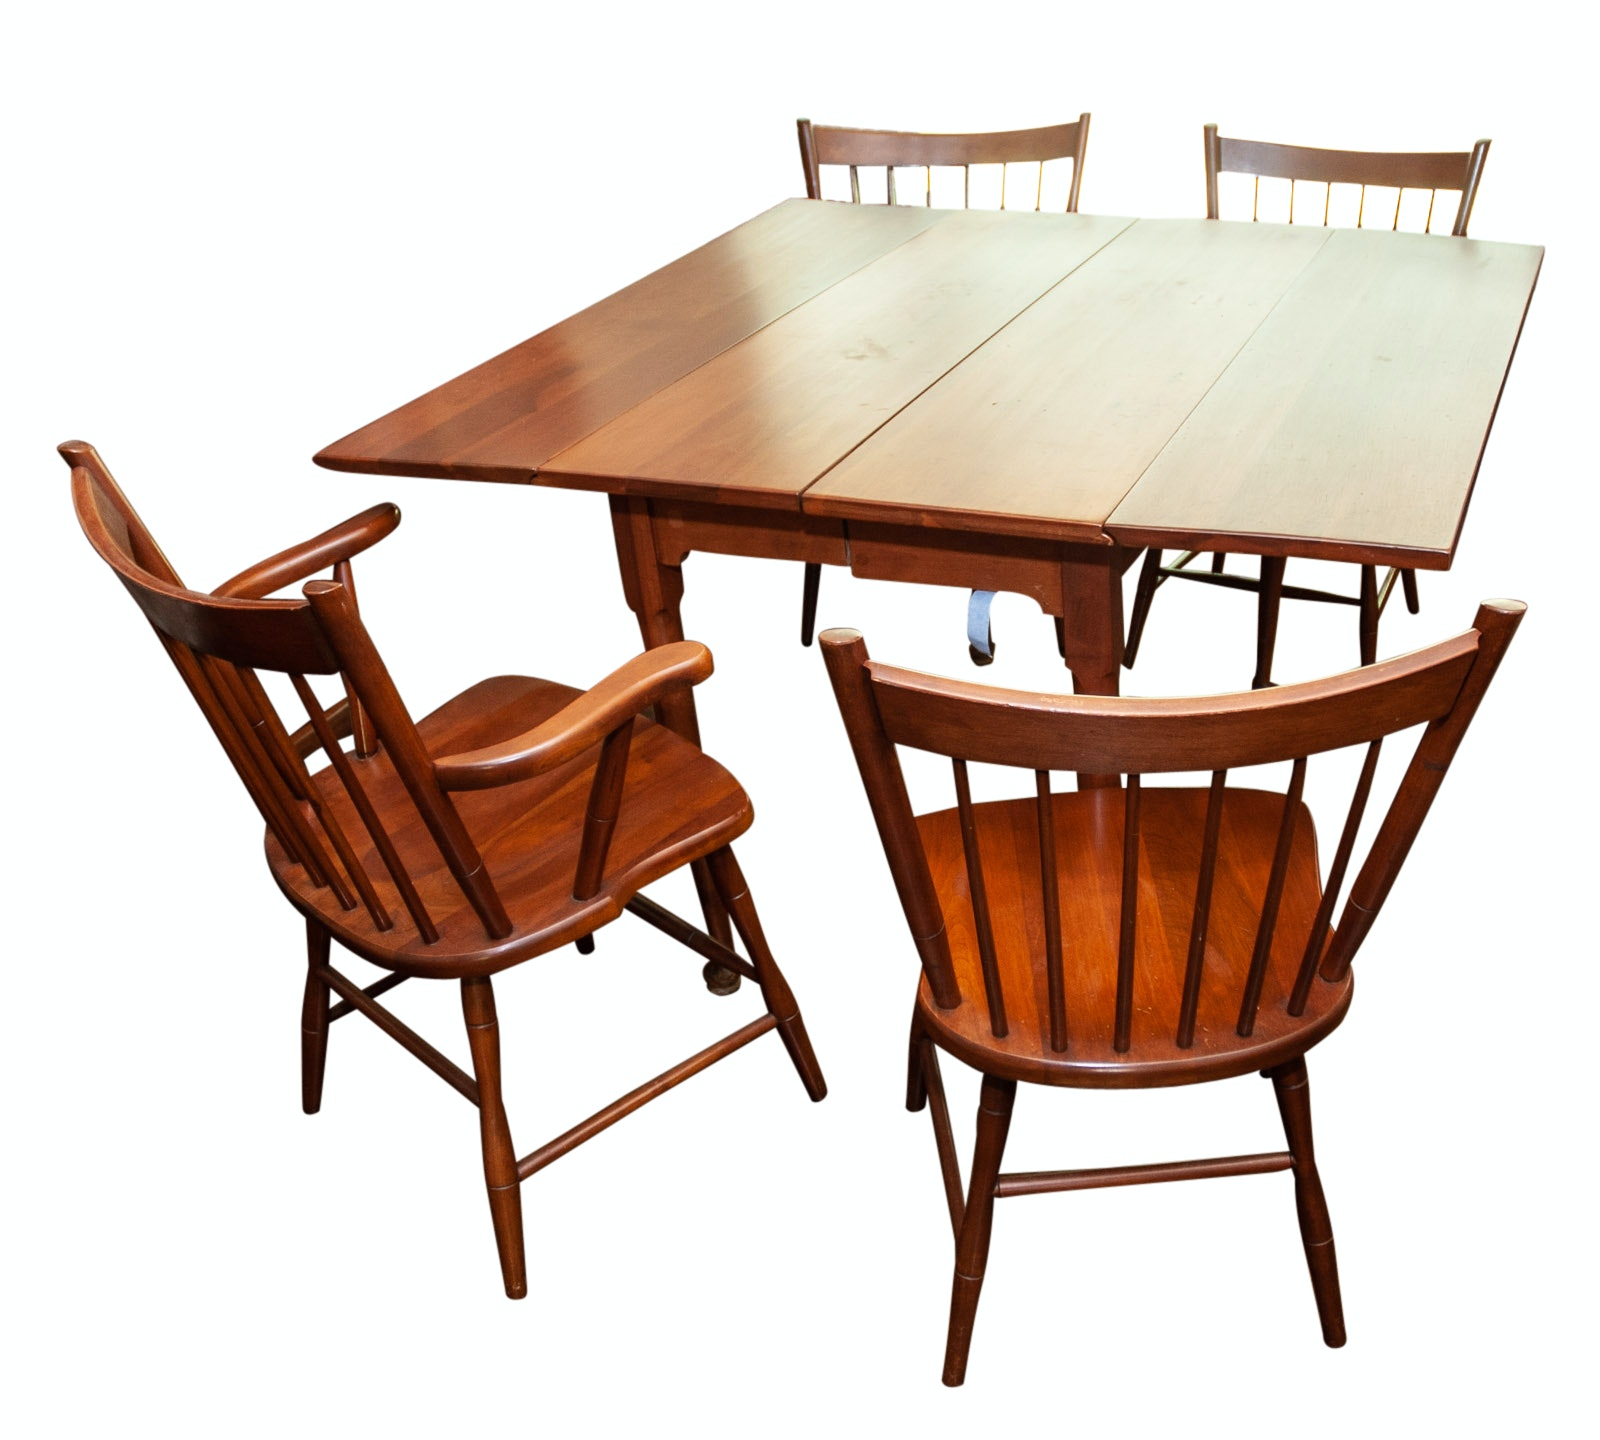 Walter of Wabash Cherry Drop Leaf Dining Table with Spindle Back Chairs